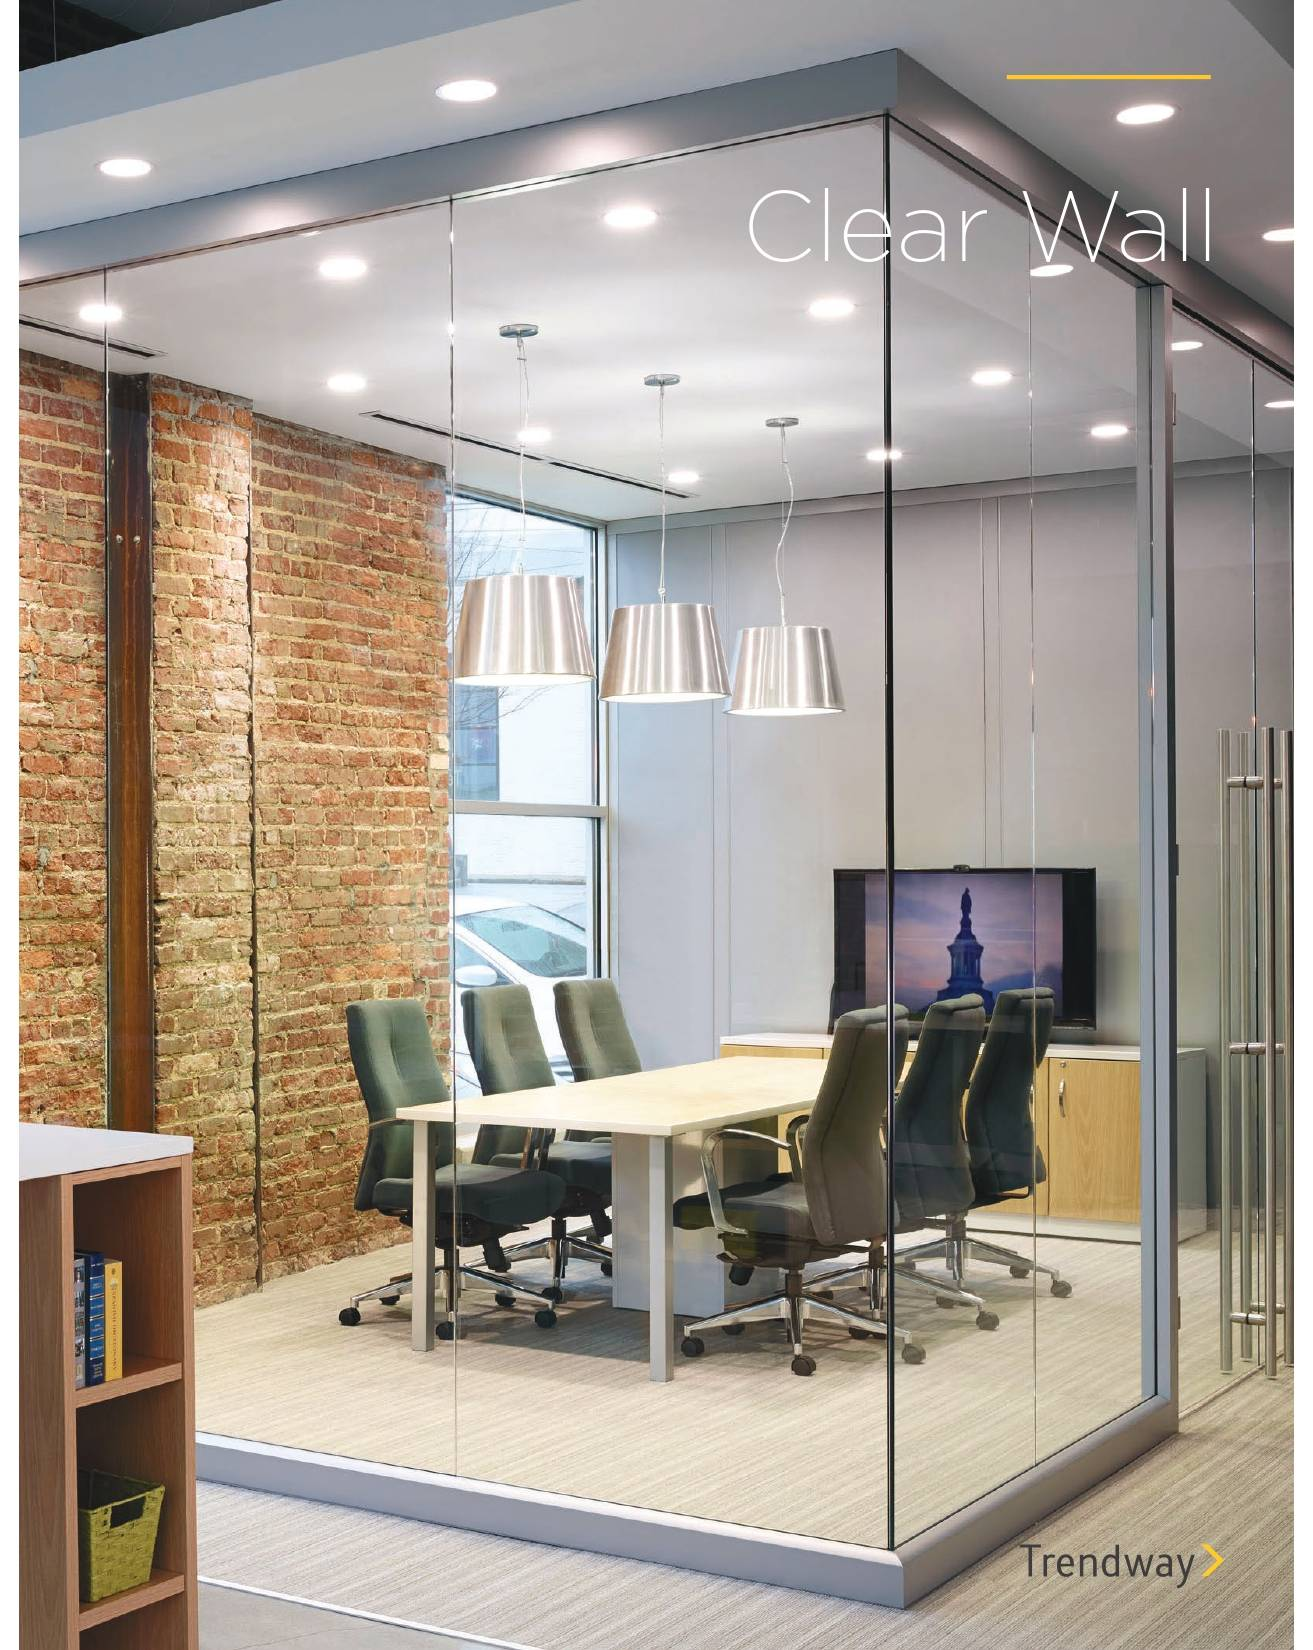 Trendway Furniture Clear Wall Architectural Walls Brochure